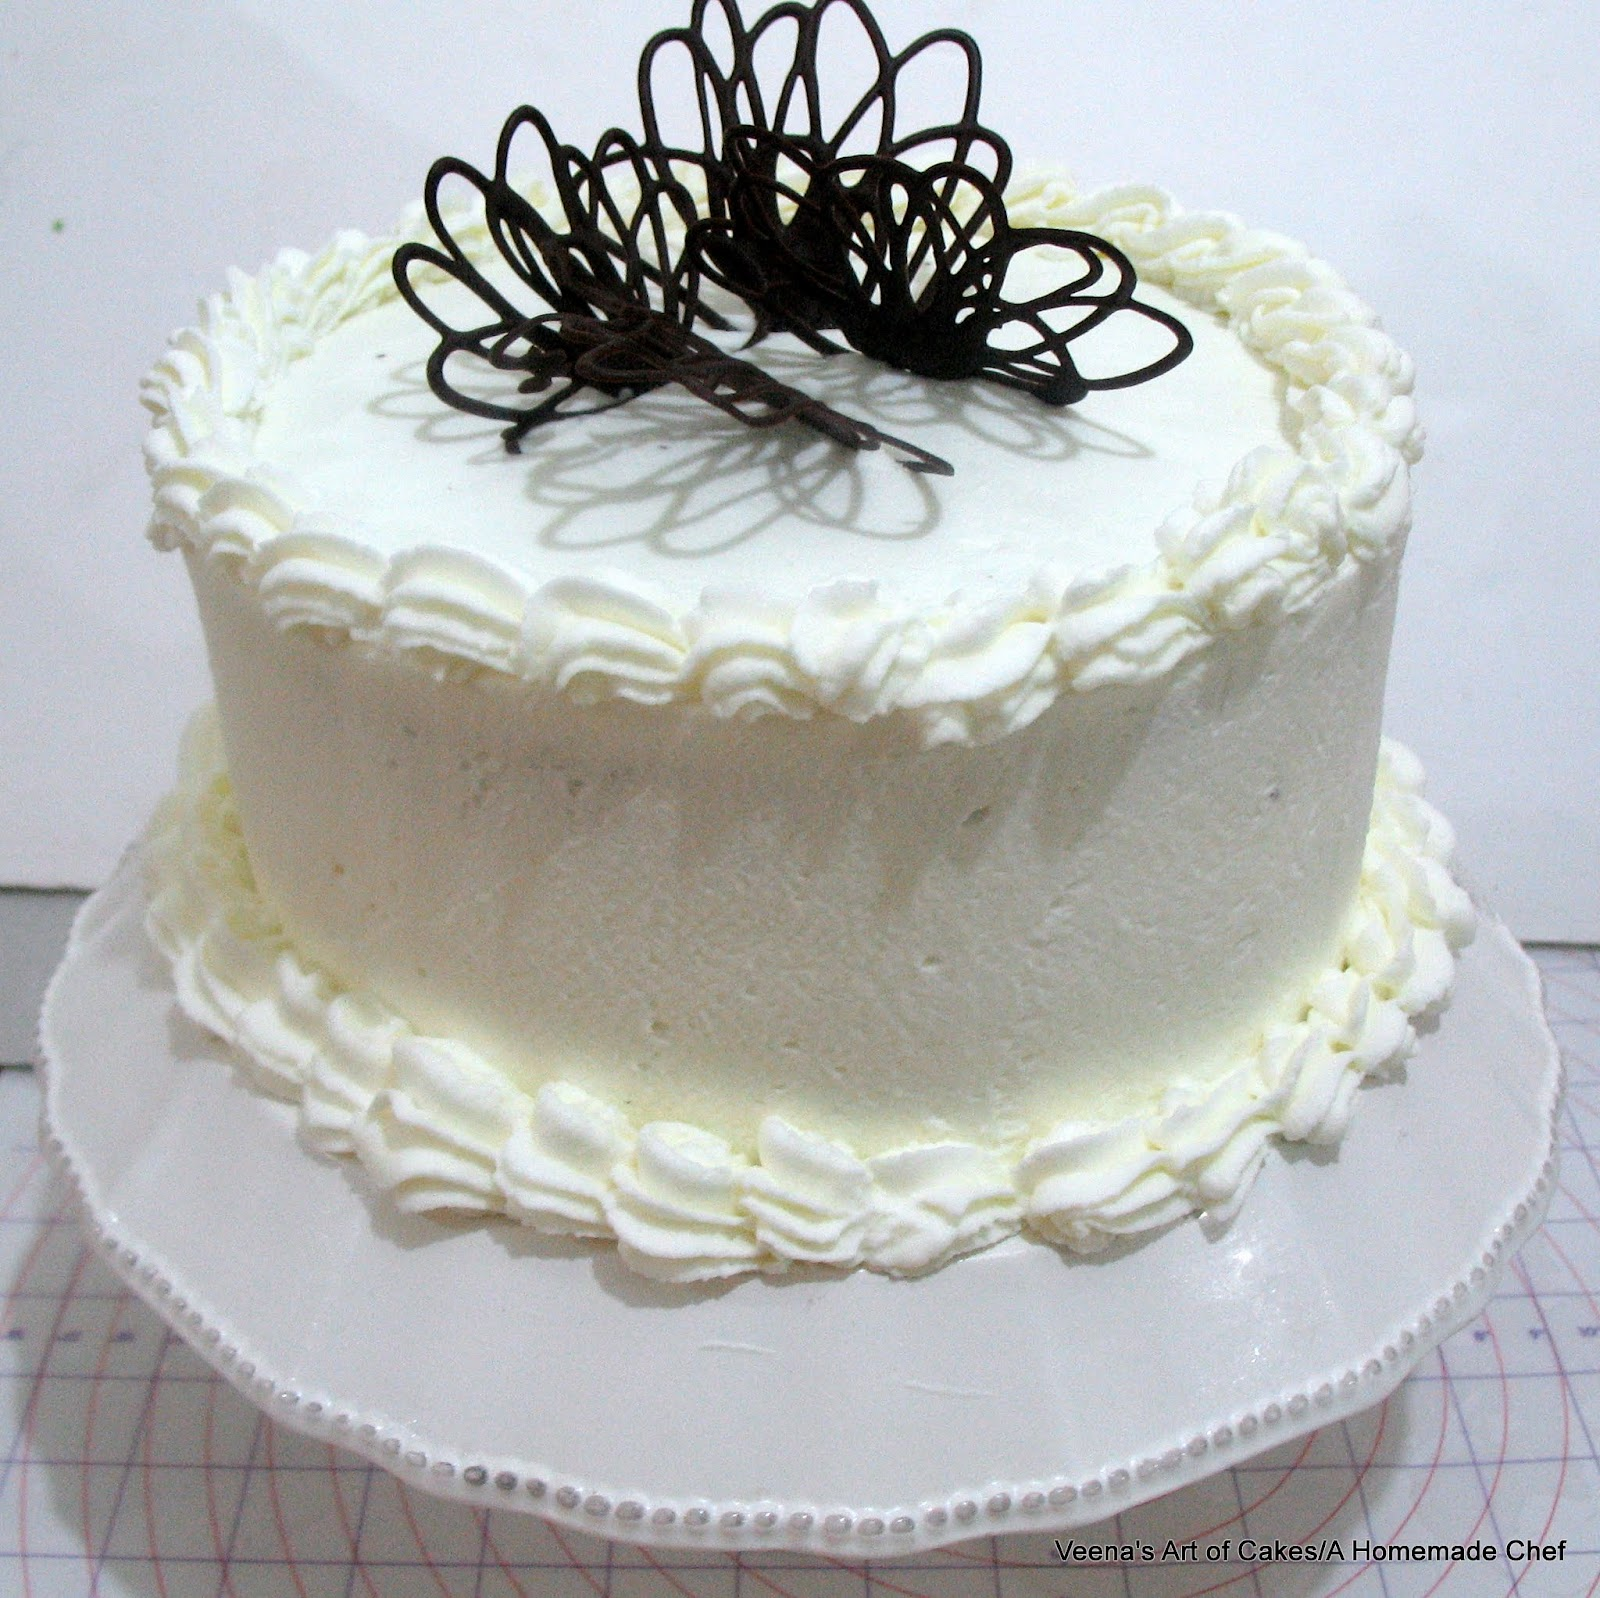 Chocolate Cake with Whipped Cream - Veena Azmanov